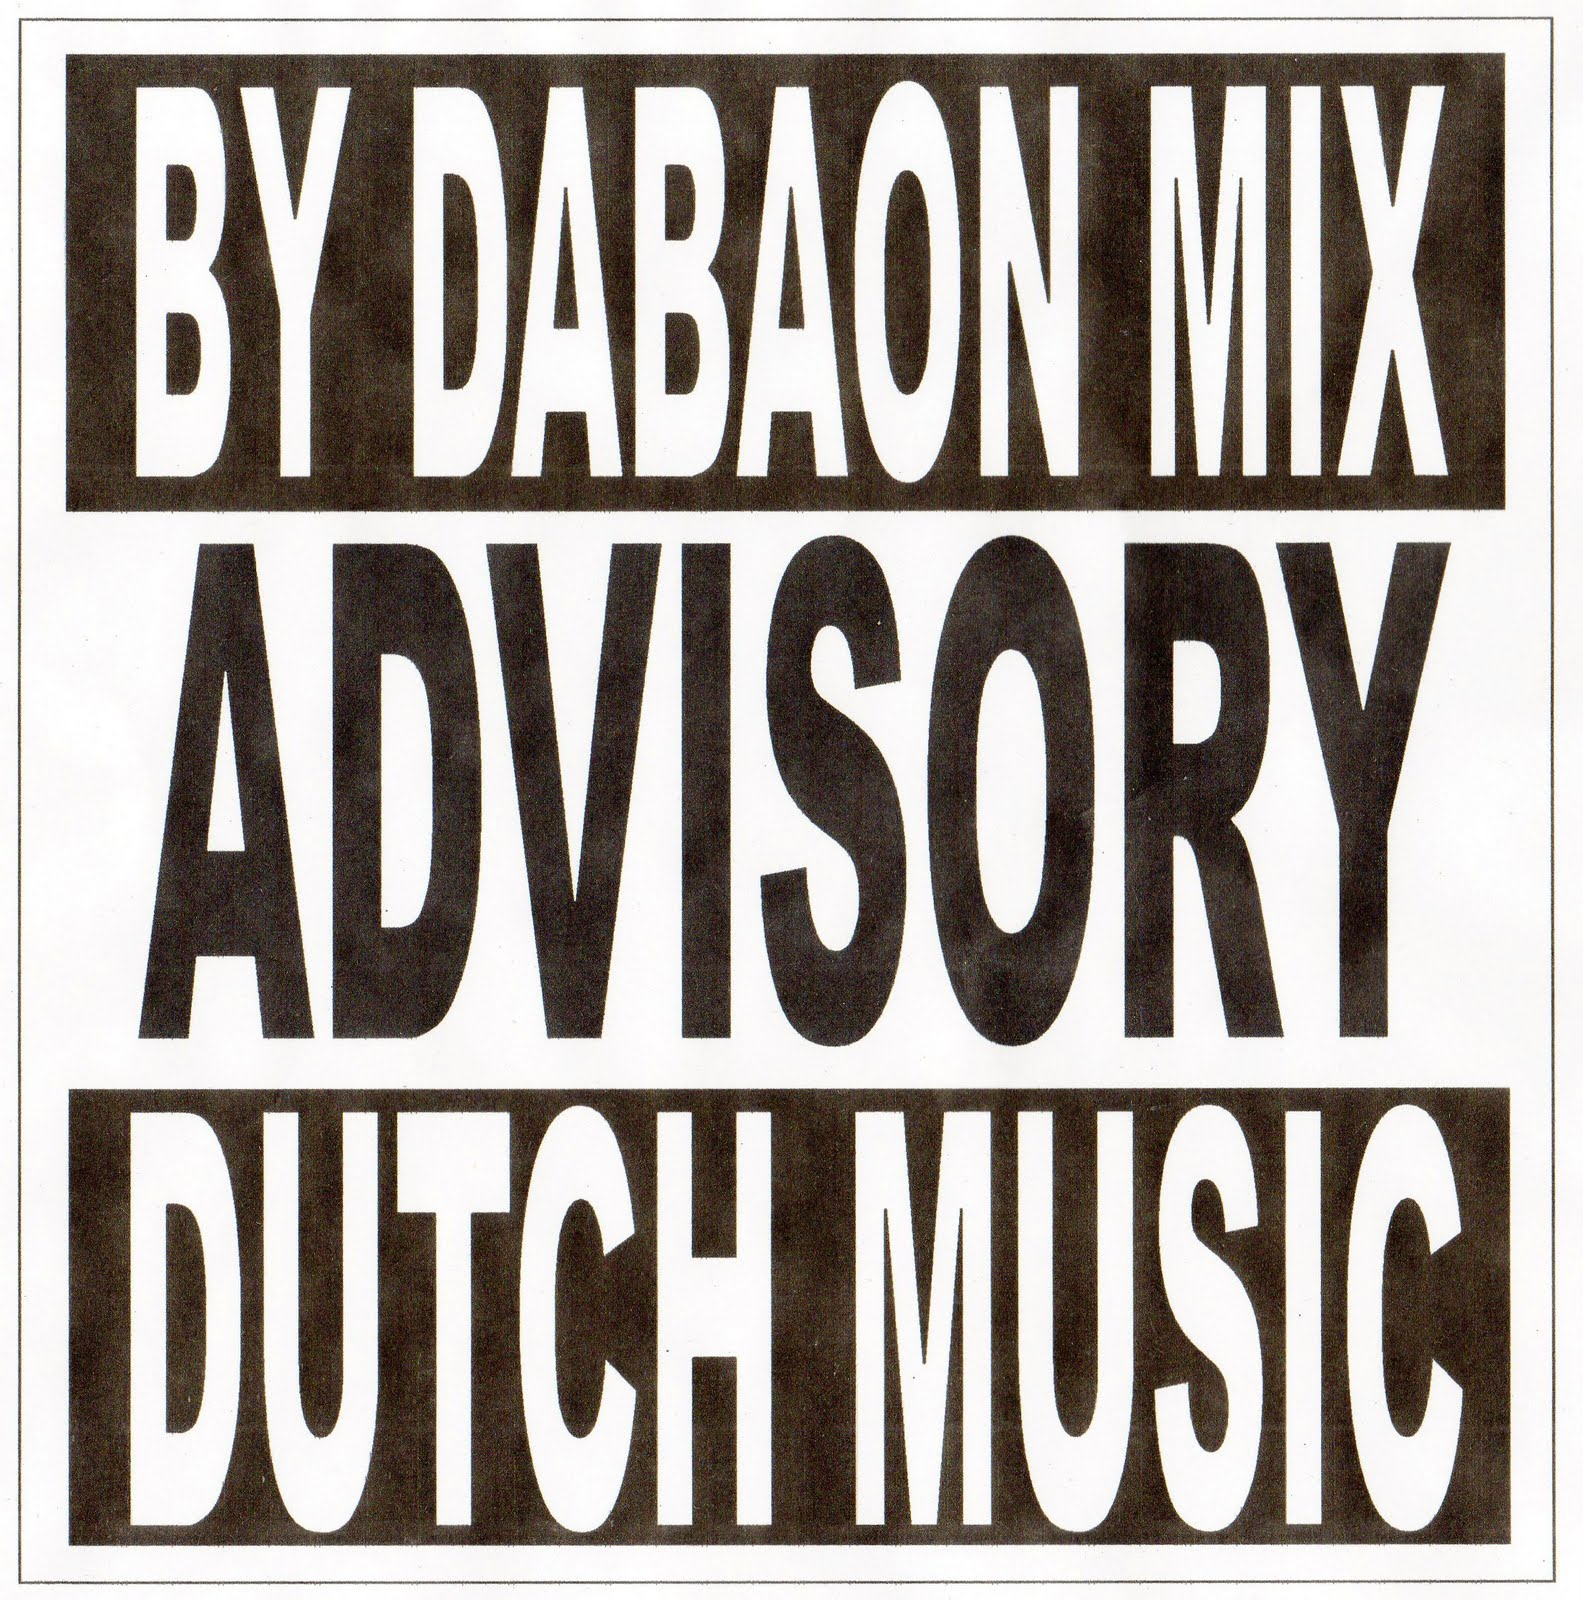 Team beatworkz pilipinas dutch house mix style 9 ft for Dutch house music